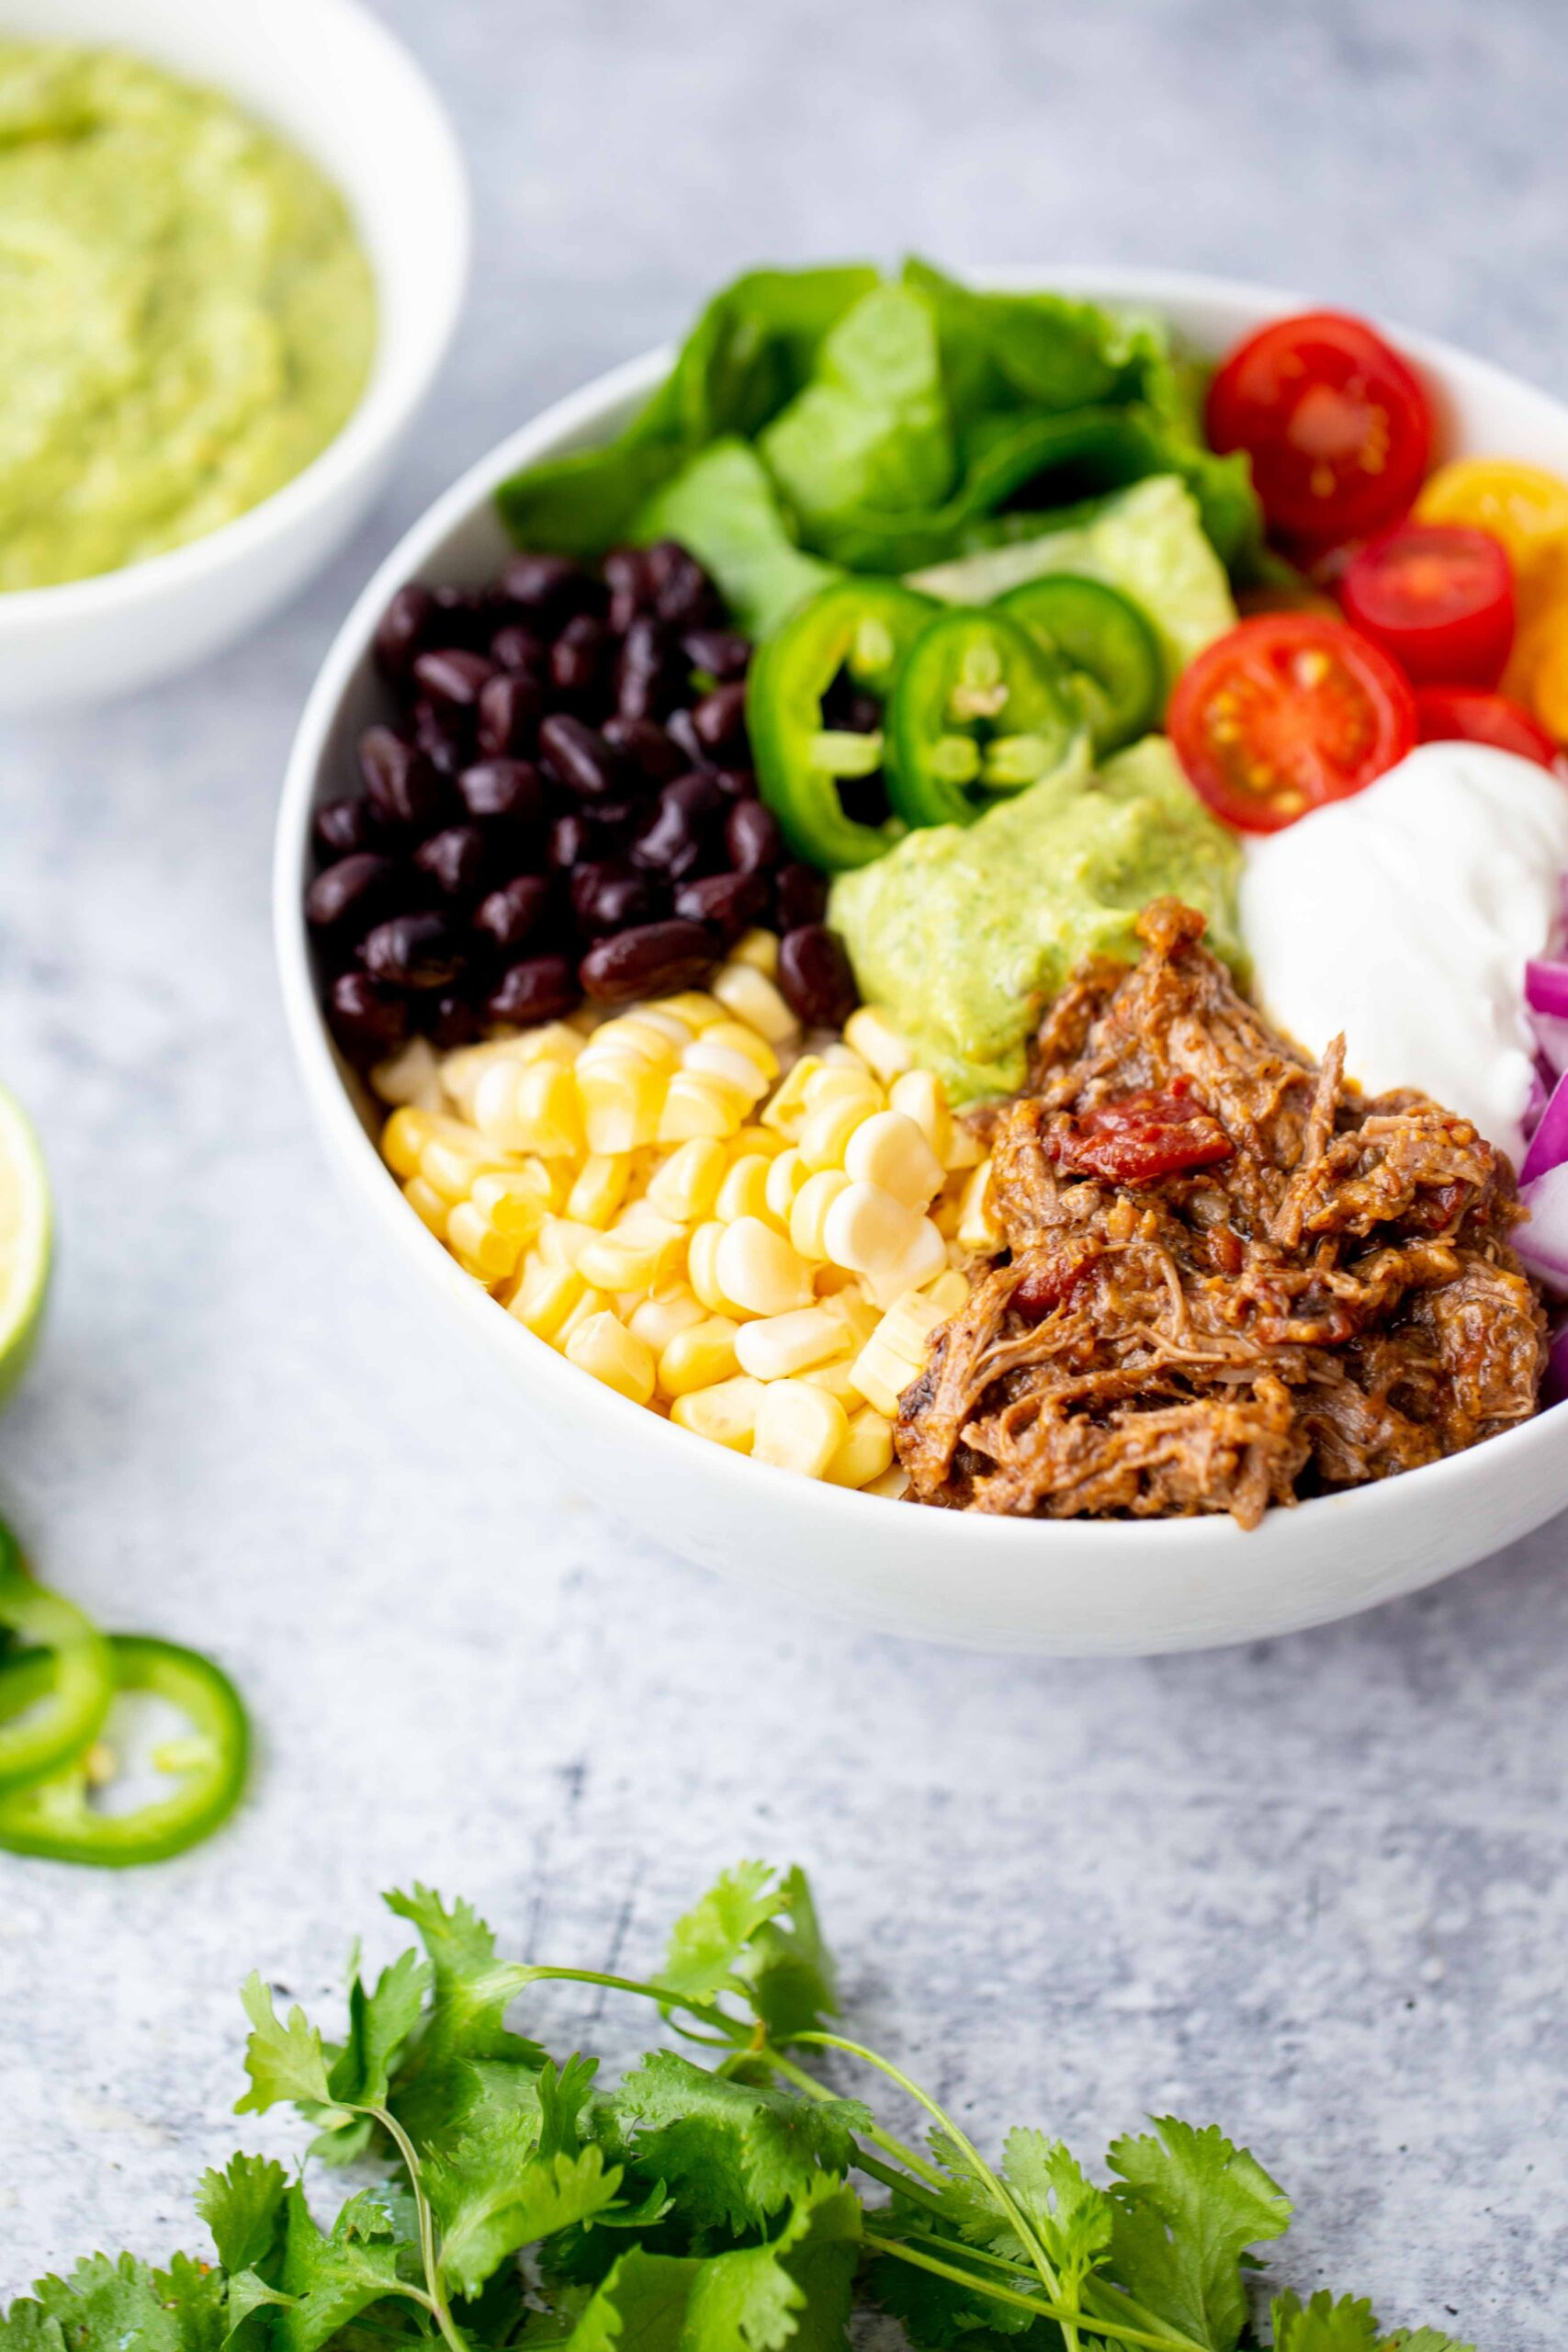 45 degree photo of a burrito bowl with instant pot shredded Mexican beef corn black beans lettuce tomatoes diced red onion sour cream jalapeños and avocado sauce on a concrete background with a bowl of avocado sauce in the background